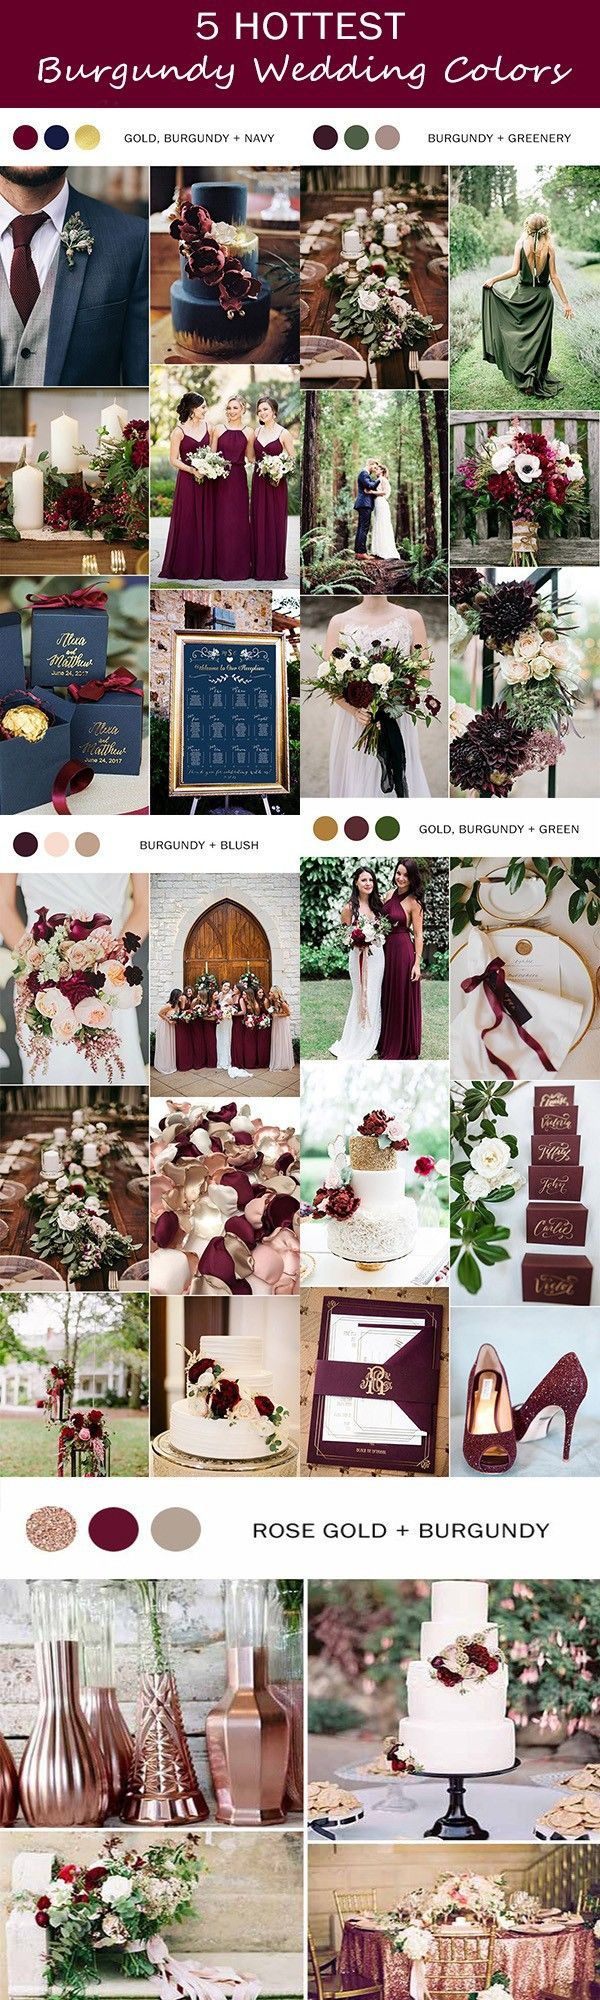 Wedding decoration ideas colors  Trending Perfect Burgundy Wedding Color Ideas to Love  Future